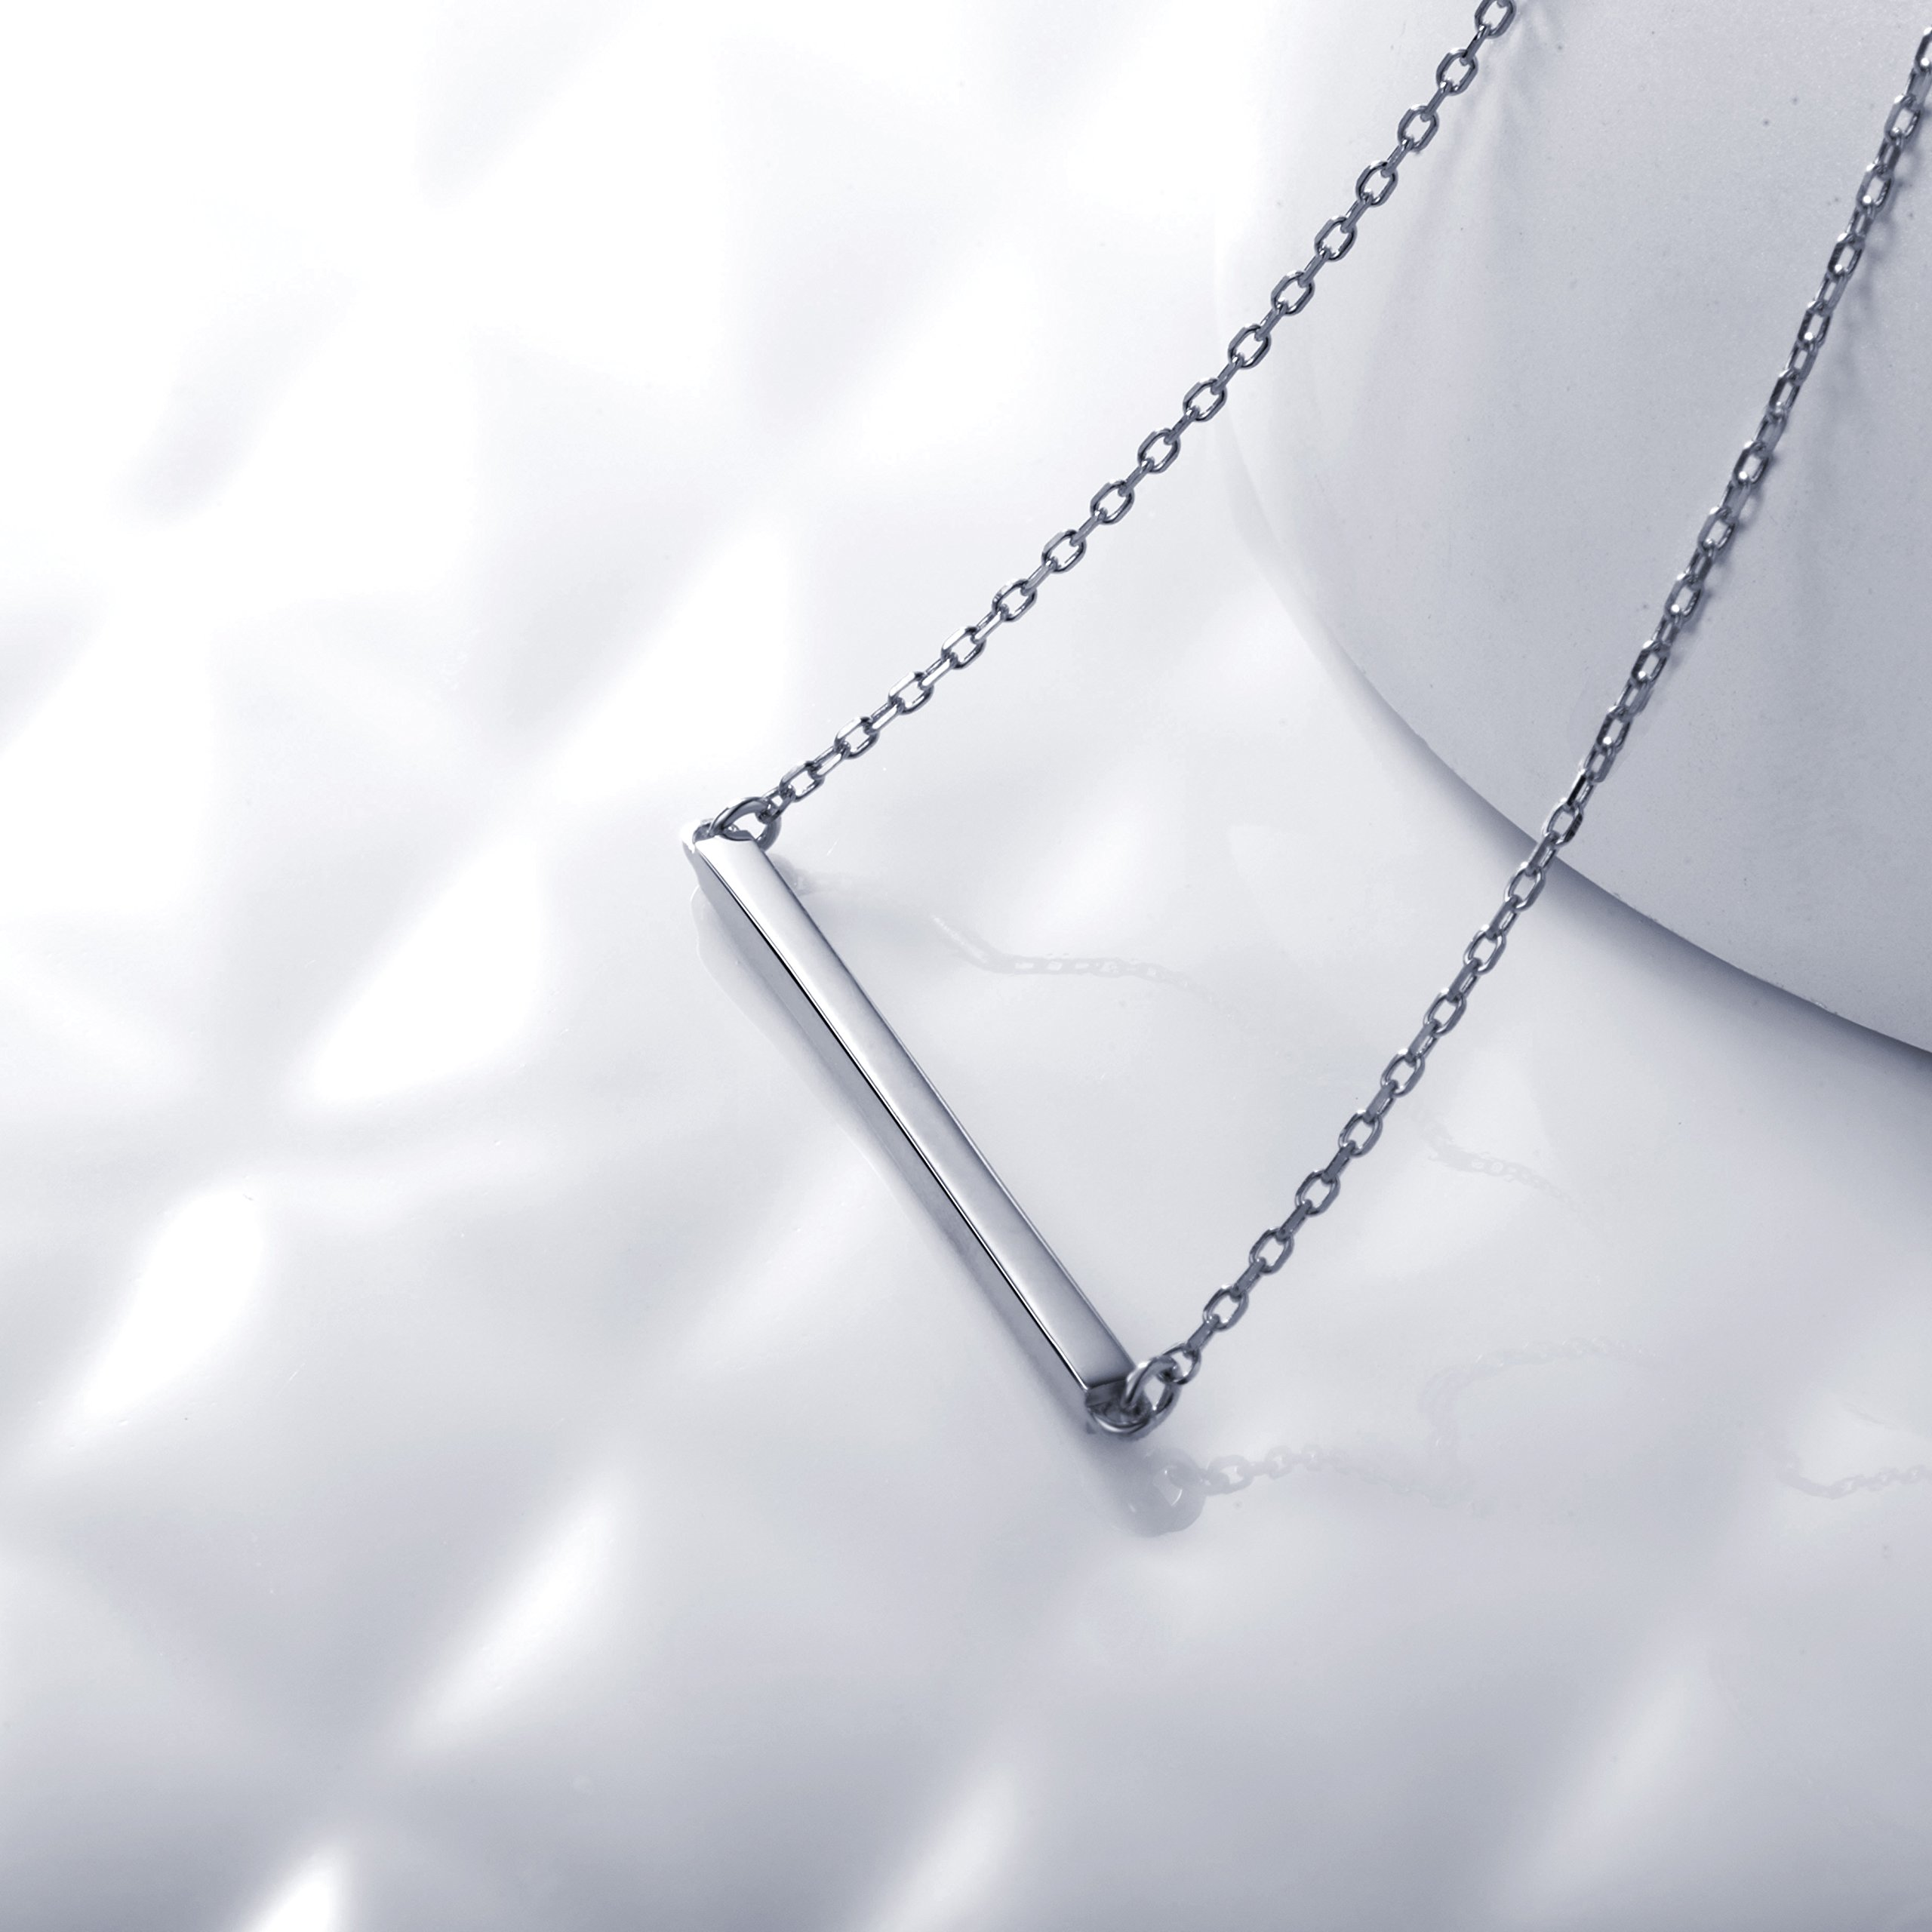 S.Leaf Bar Necklace Sterling Silver Minimalism Line Necklace Horizontal Bar Necklace (Necklace-White Gold) by S.Leaf (Image #2)